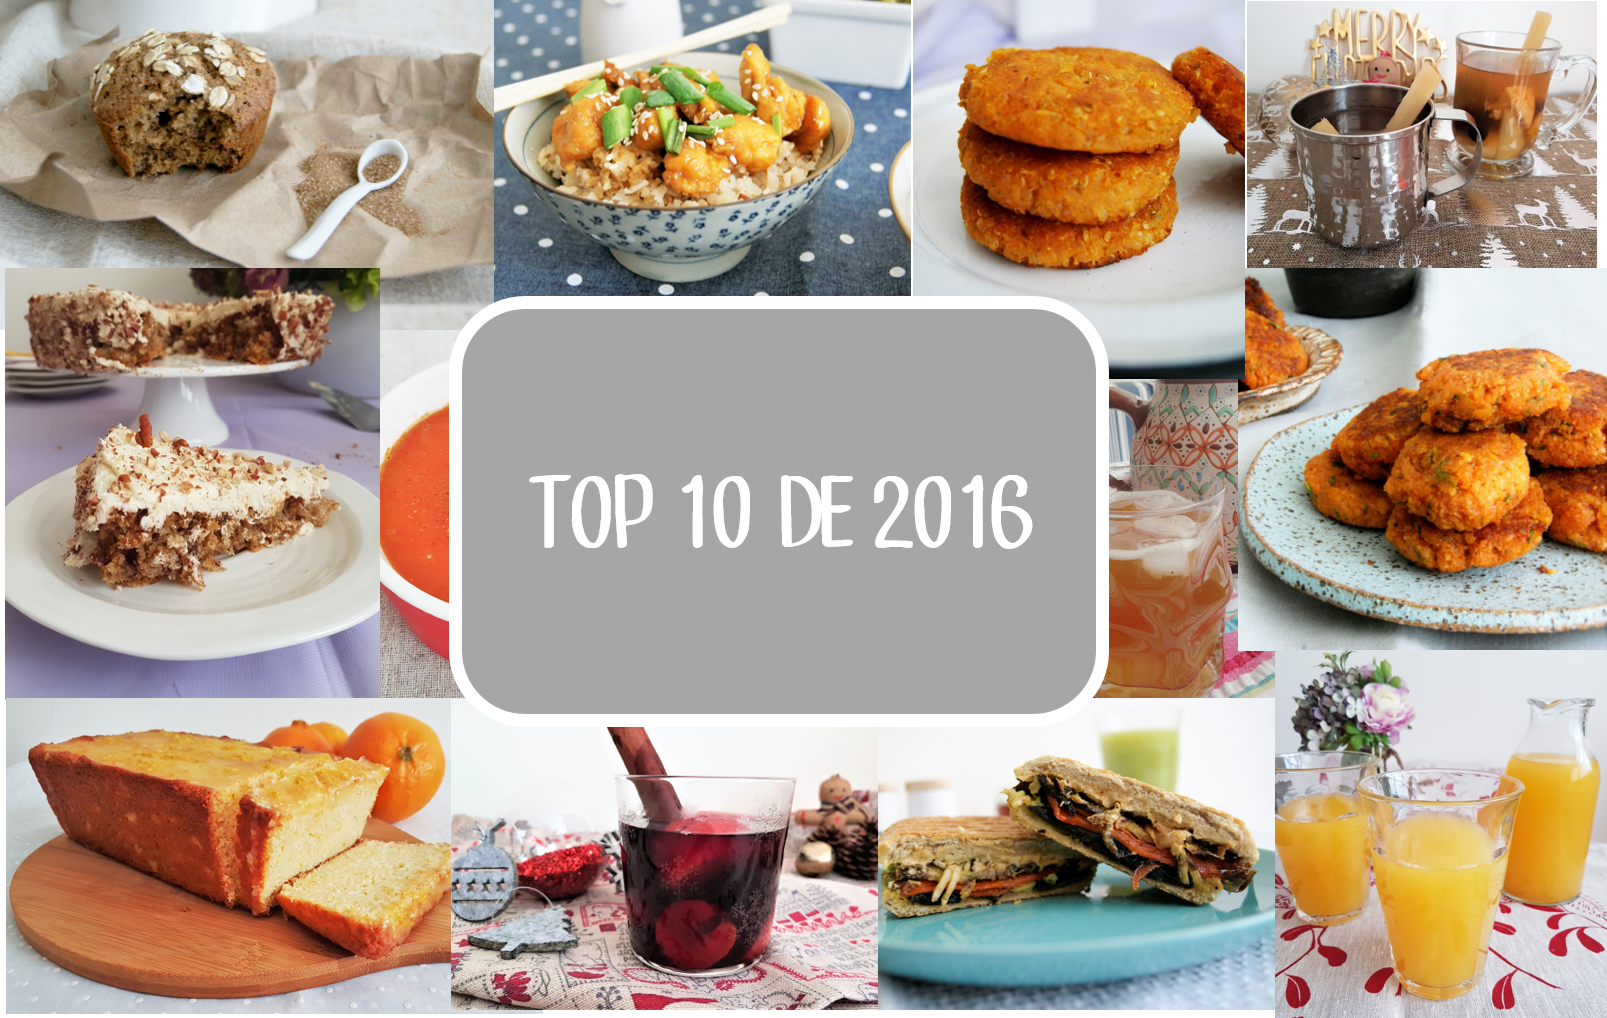 El top 10 de 2016/ 2016 Top ten